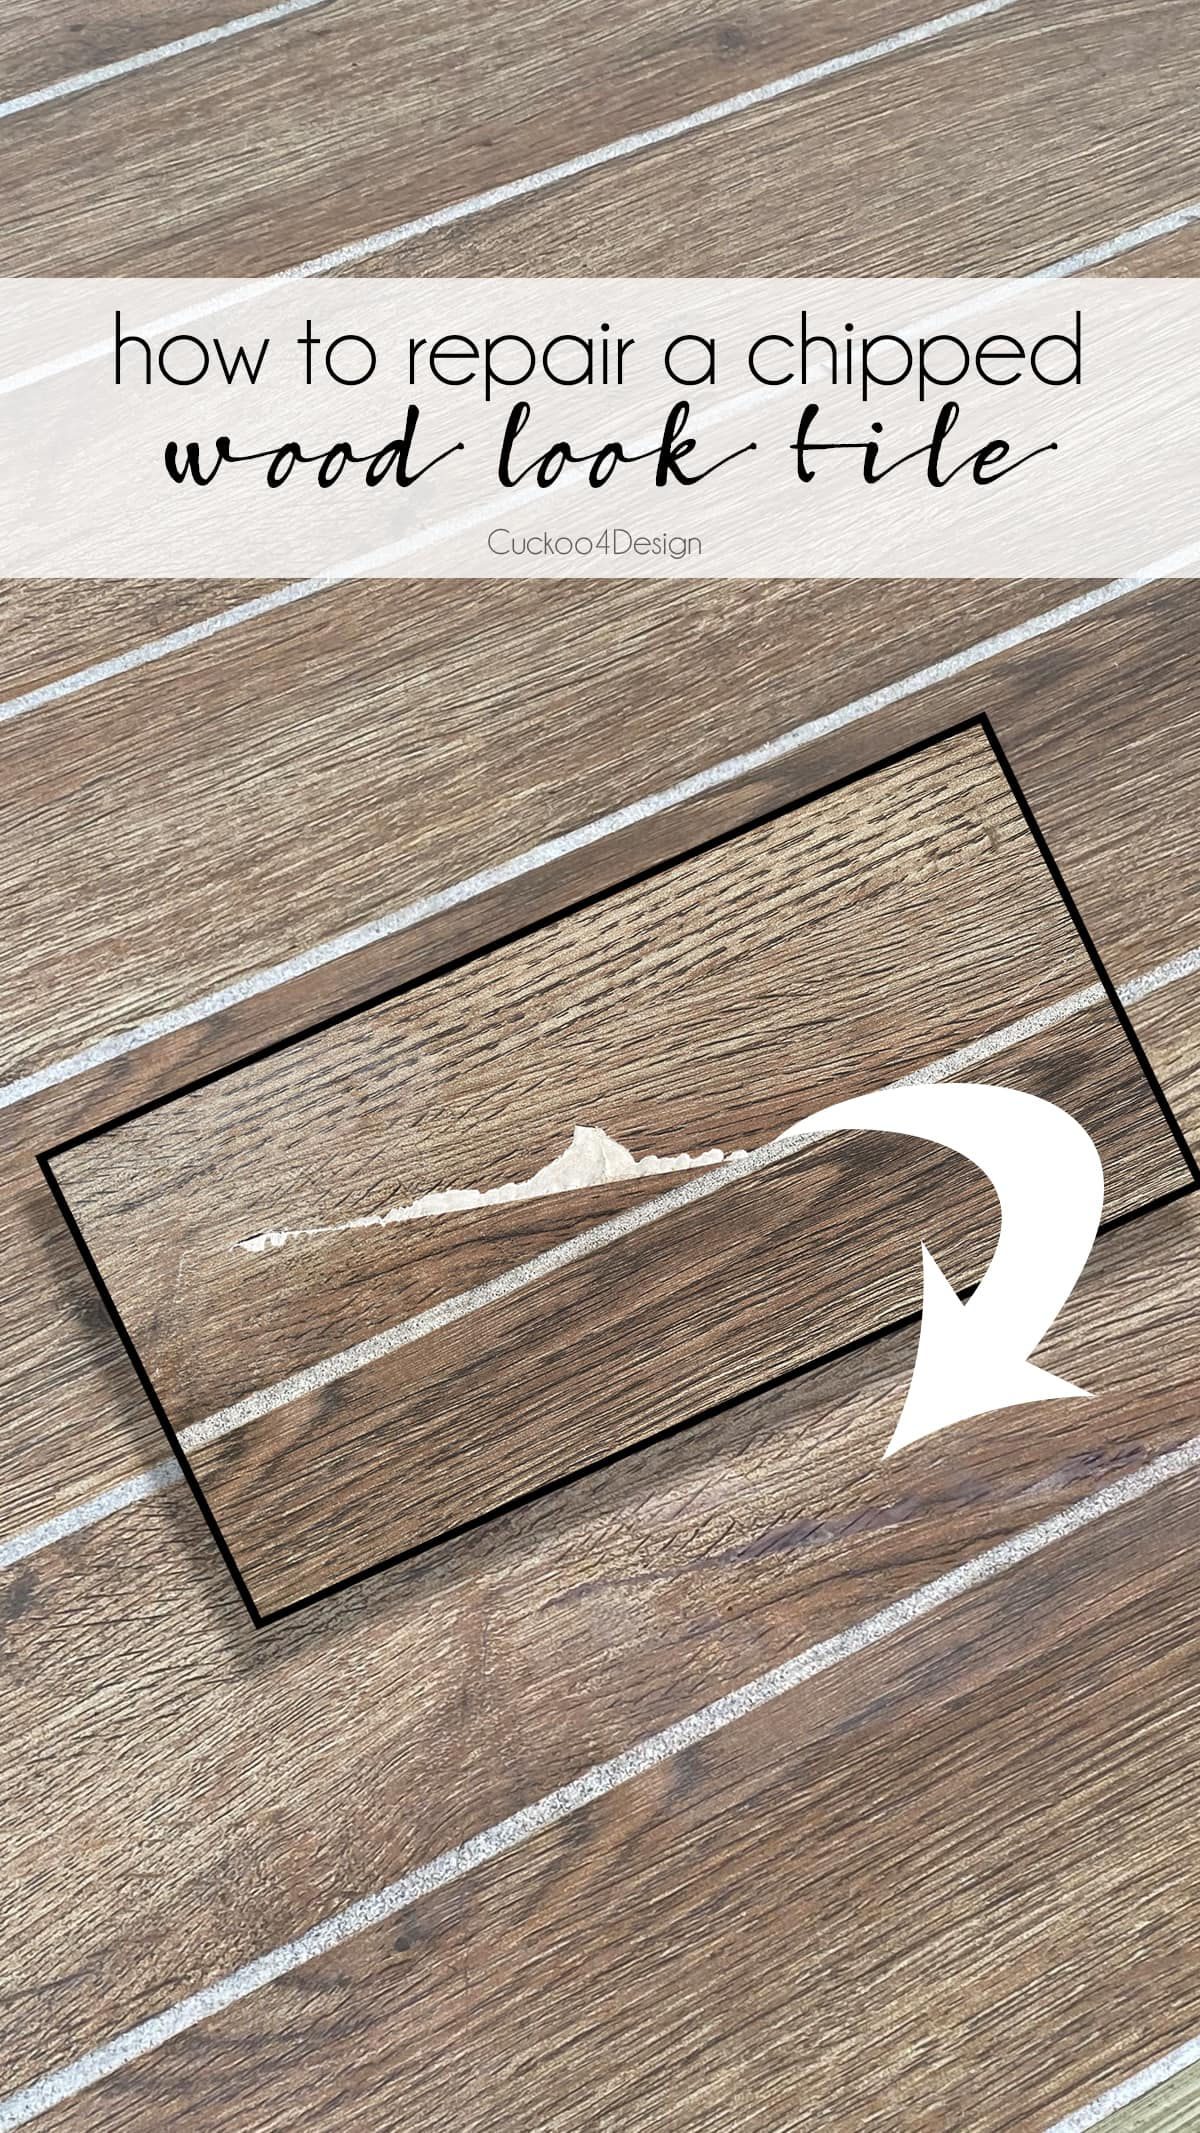 how to fix a chipped wood look tile